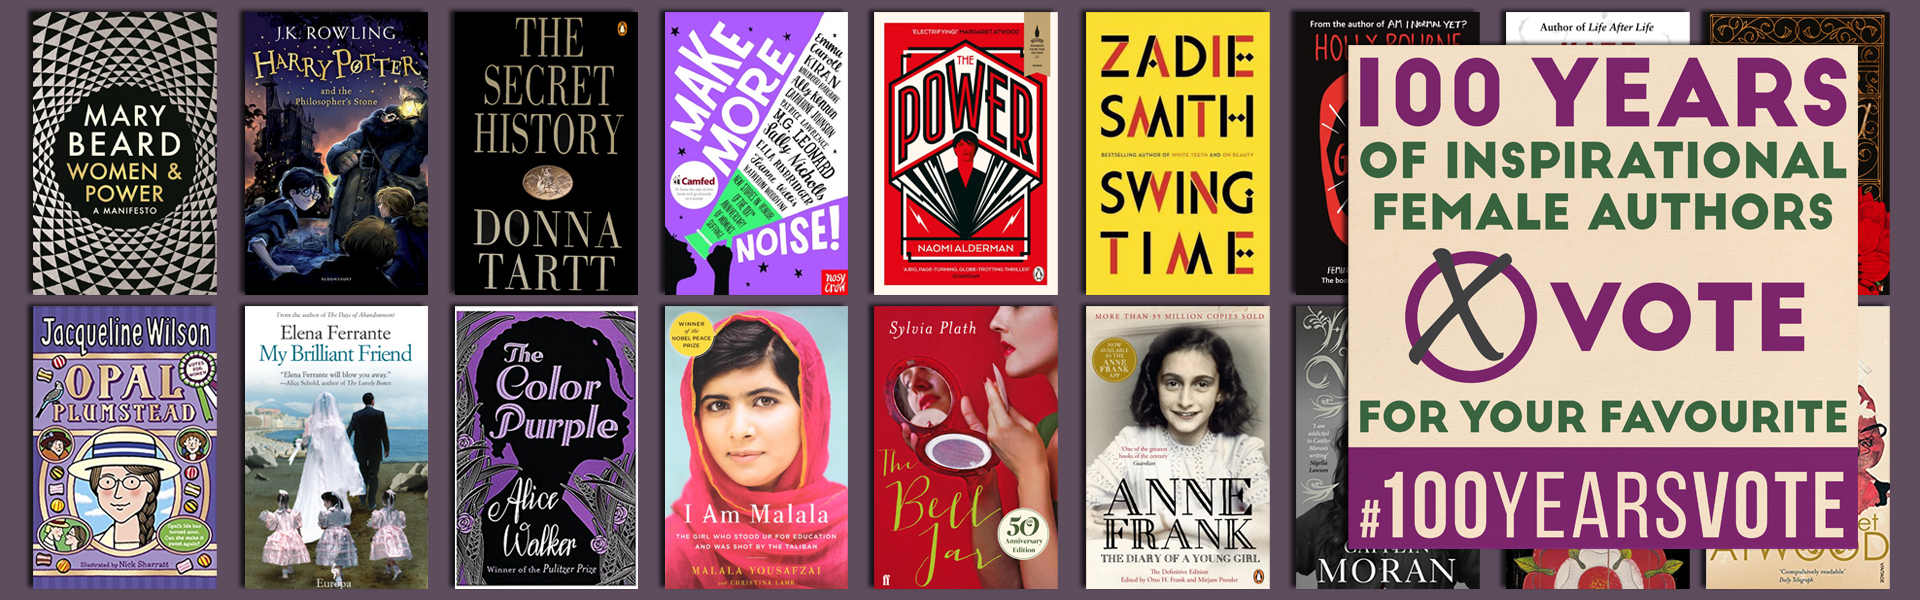 Celebrating 100 Years of Inspirational Female Authors #100YearsVote